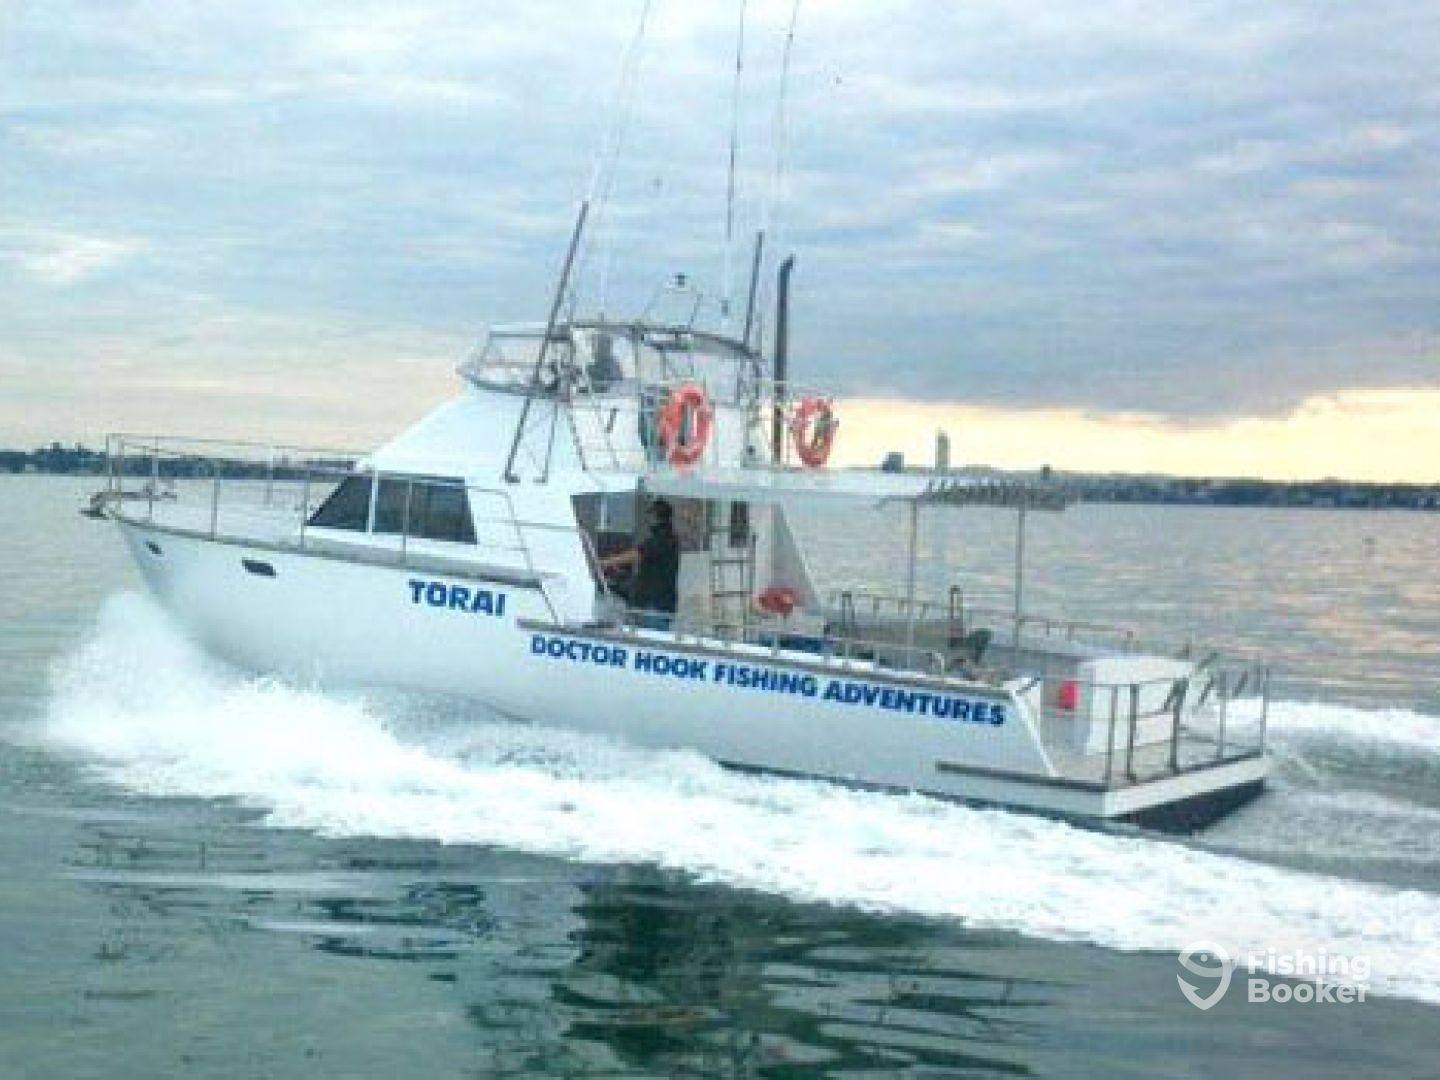 Doctor hook fishing torai 43 auckland new zealand for Fishing charters auckland